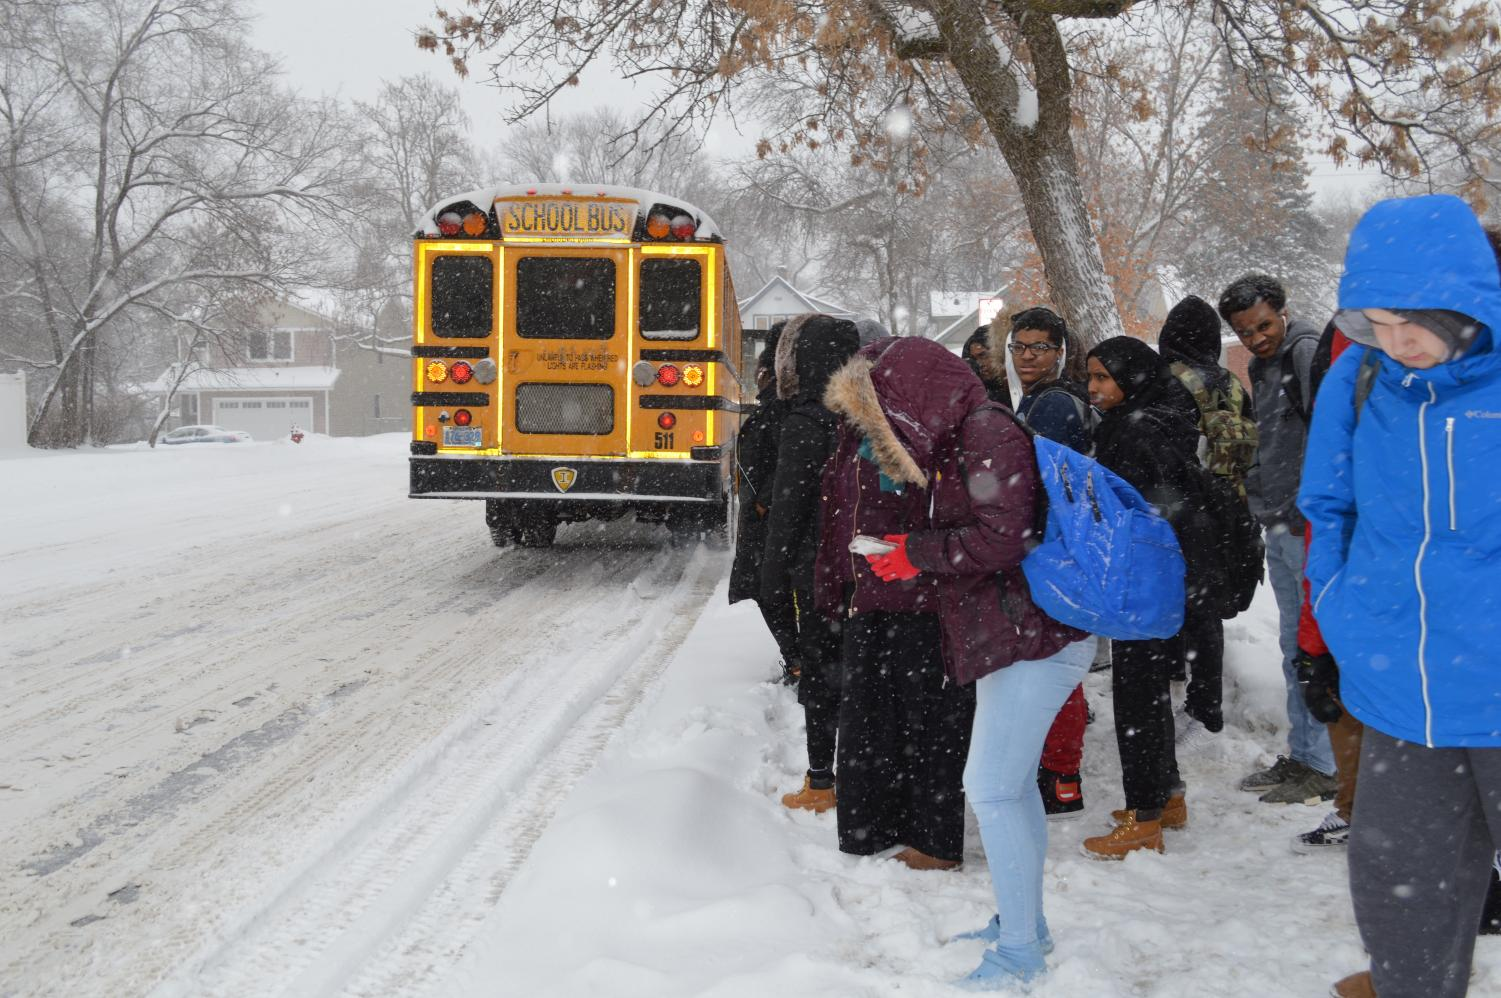 Students wait outside for their school bus after the early dismissal at 2:10 p.m. Feb. 7. St. Louis Park Public Schools will be closed Feb. 20 due to the forecasted snowstorm.